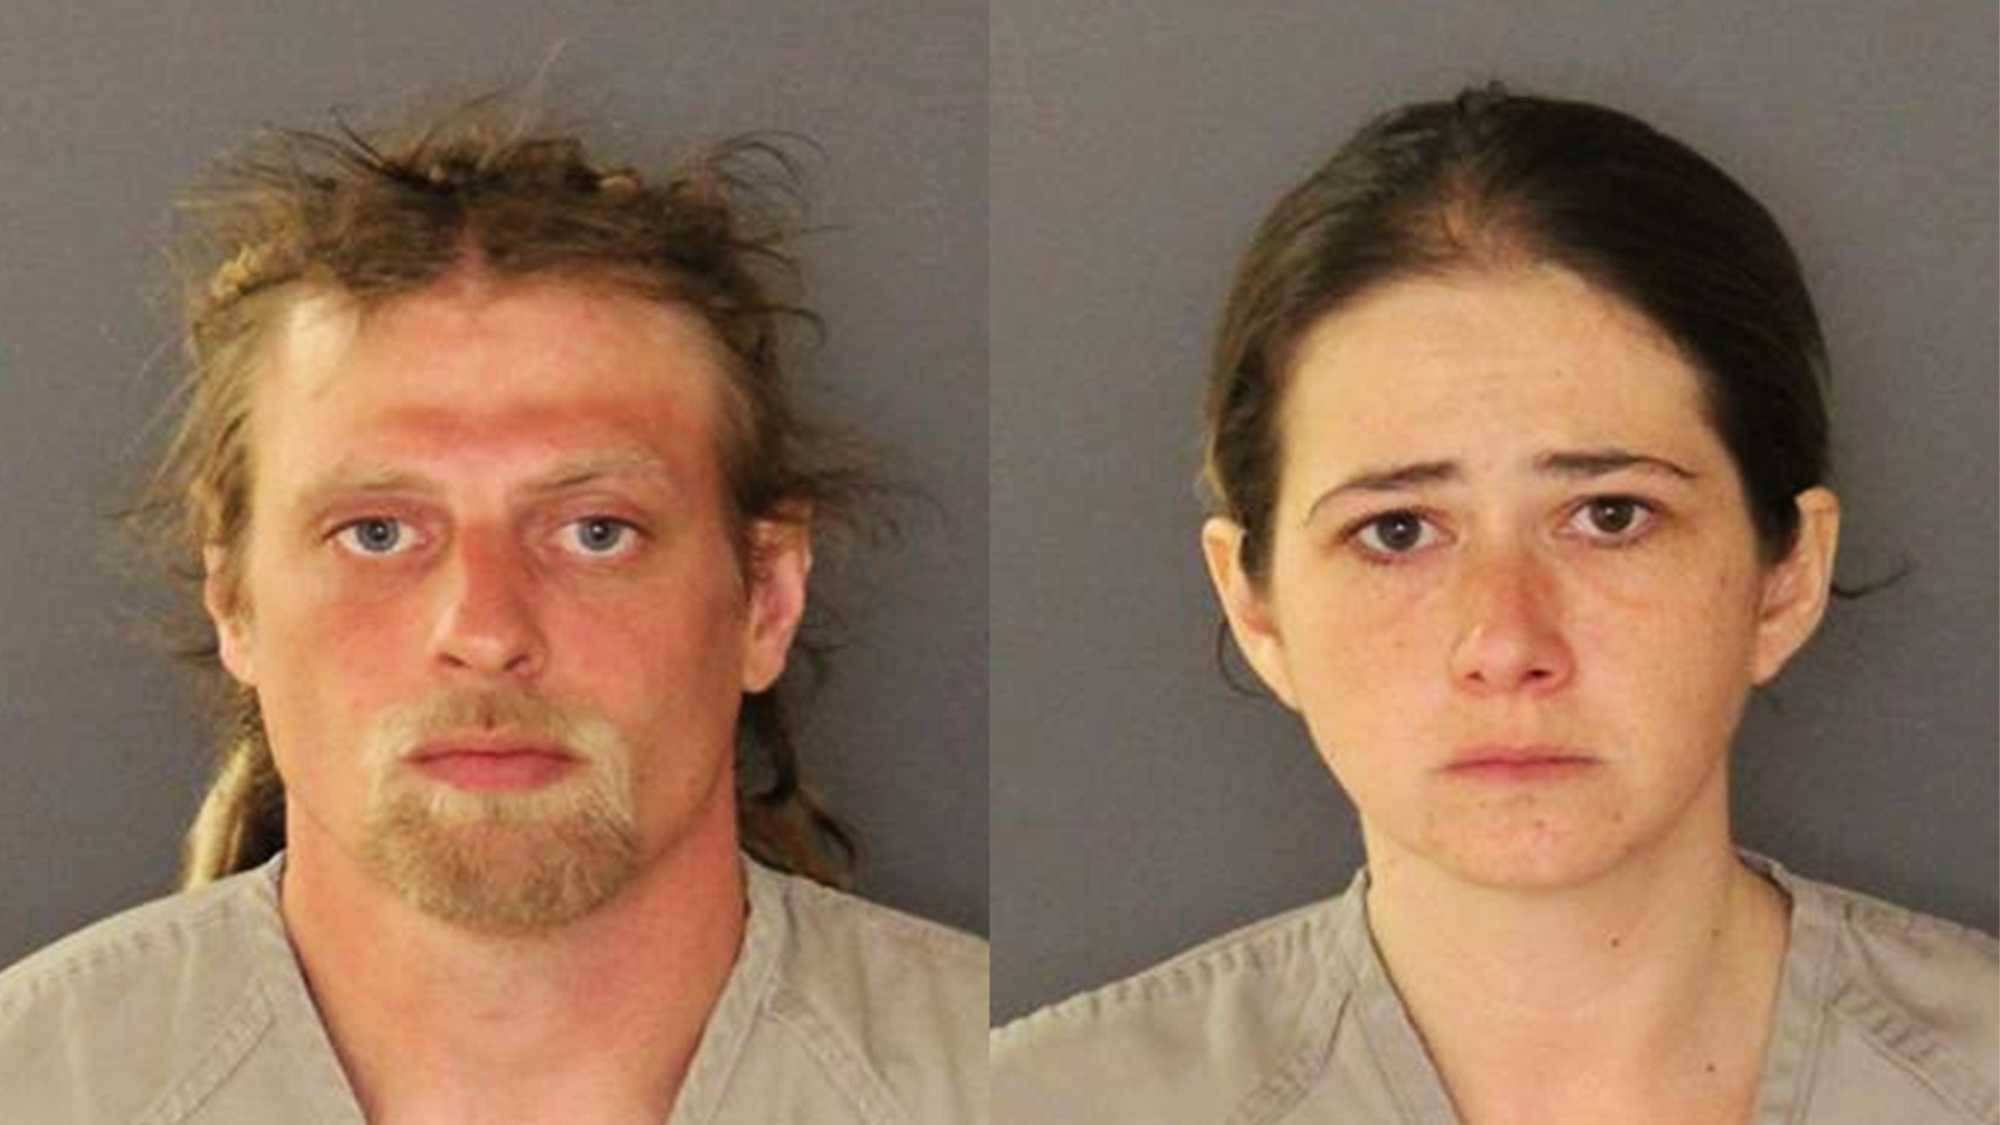 Brandon Kenney and his wife, Christina Kenney, are seen in mug shots after they were arrested.